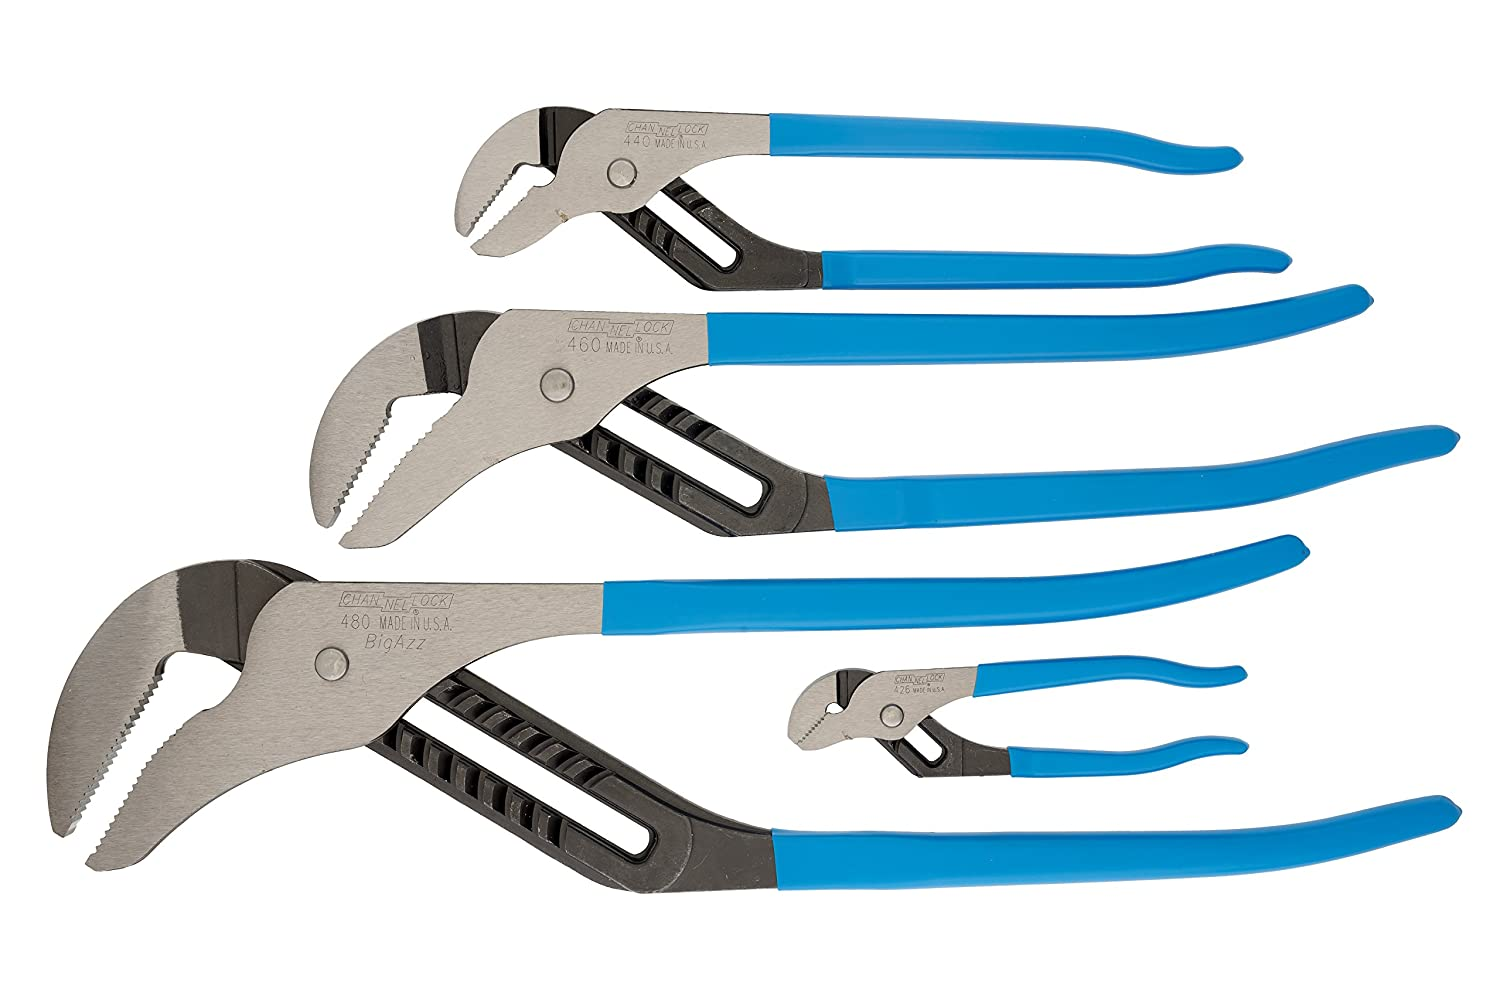 CHANNELLOCK 480 Tongue /& Groove Plier